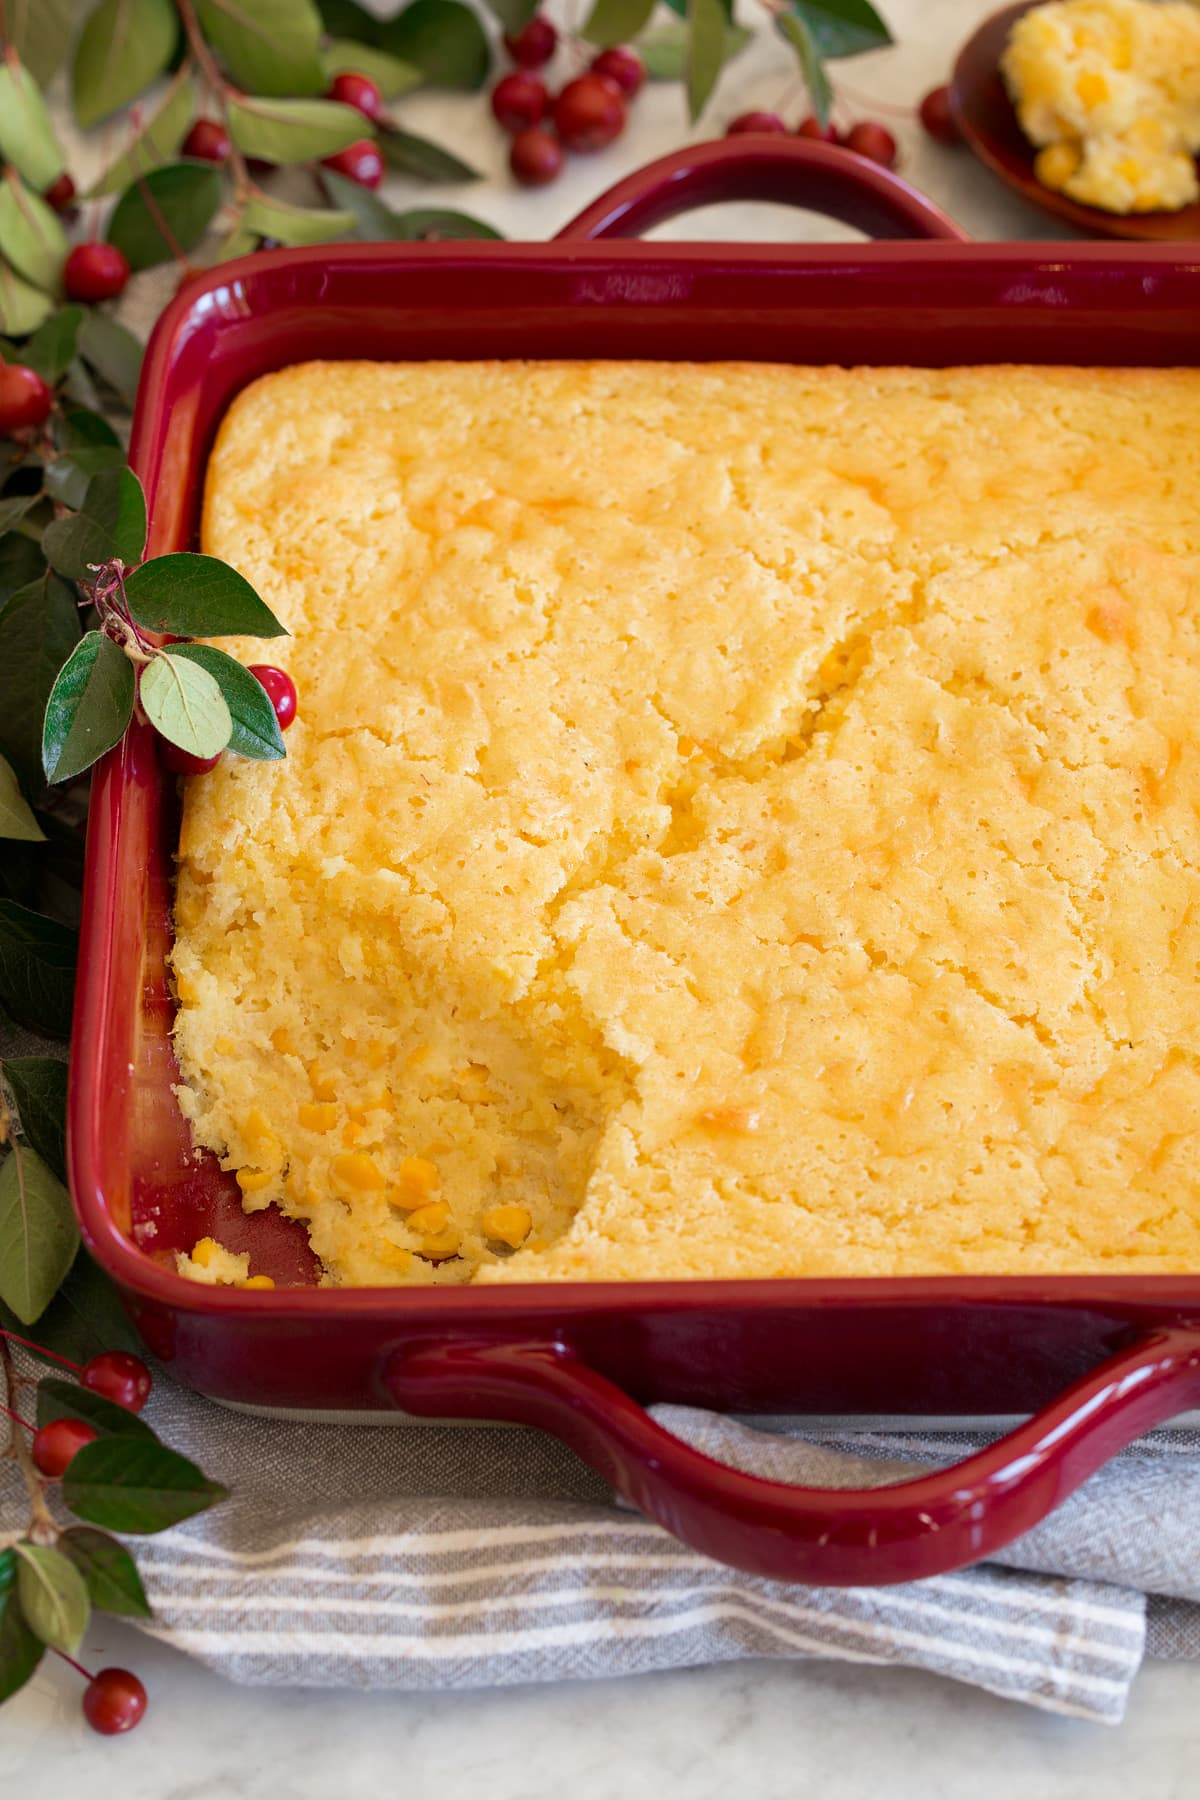 Corn casserole shown from the side with spoon removed.